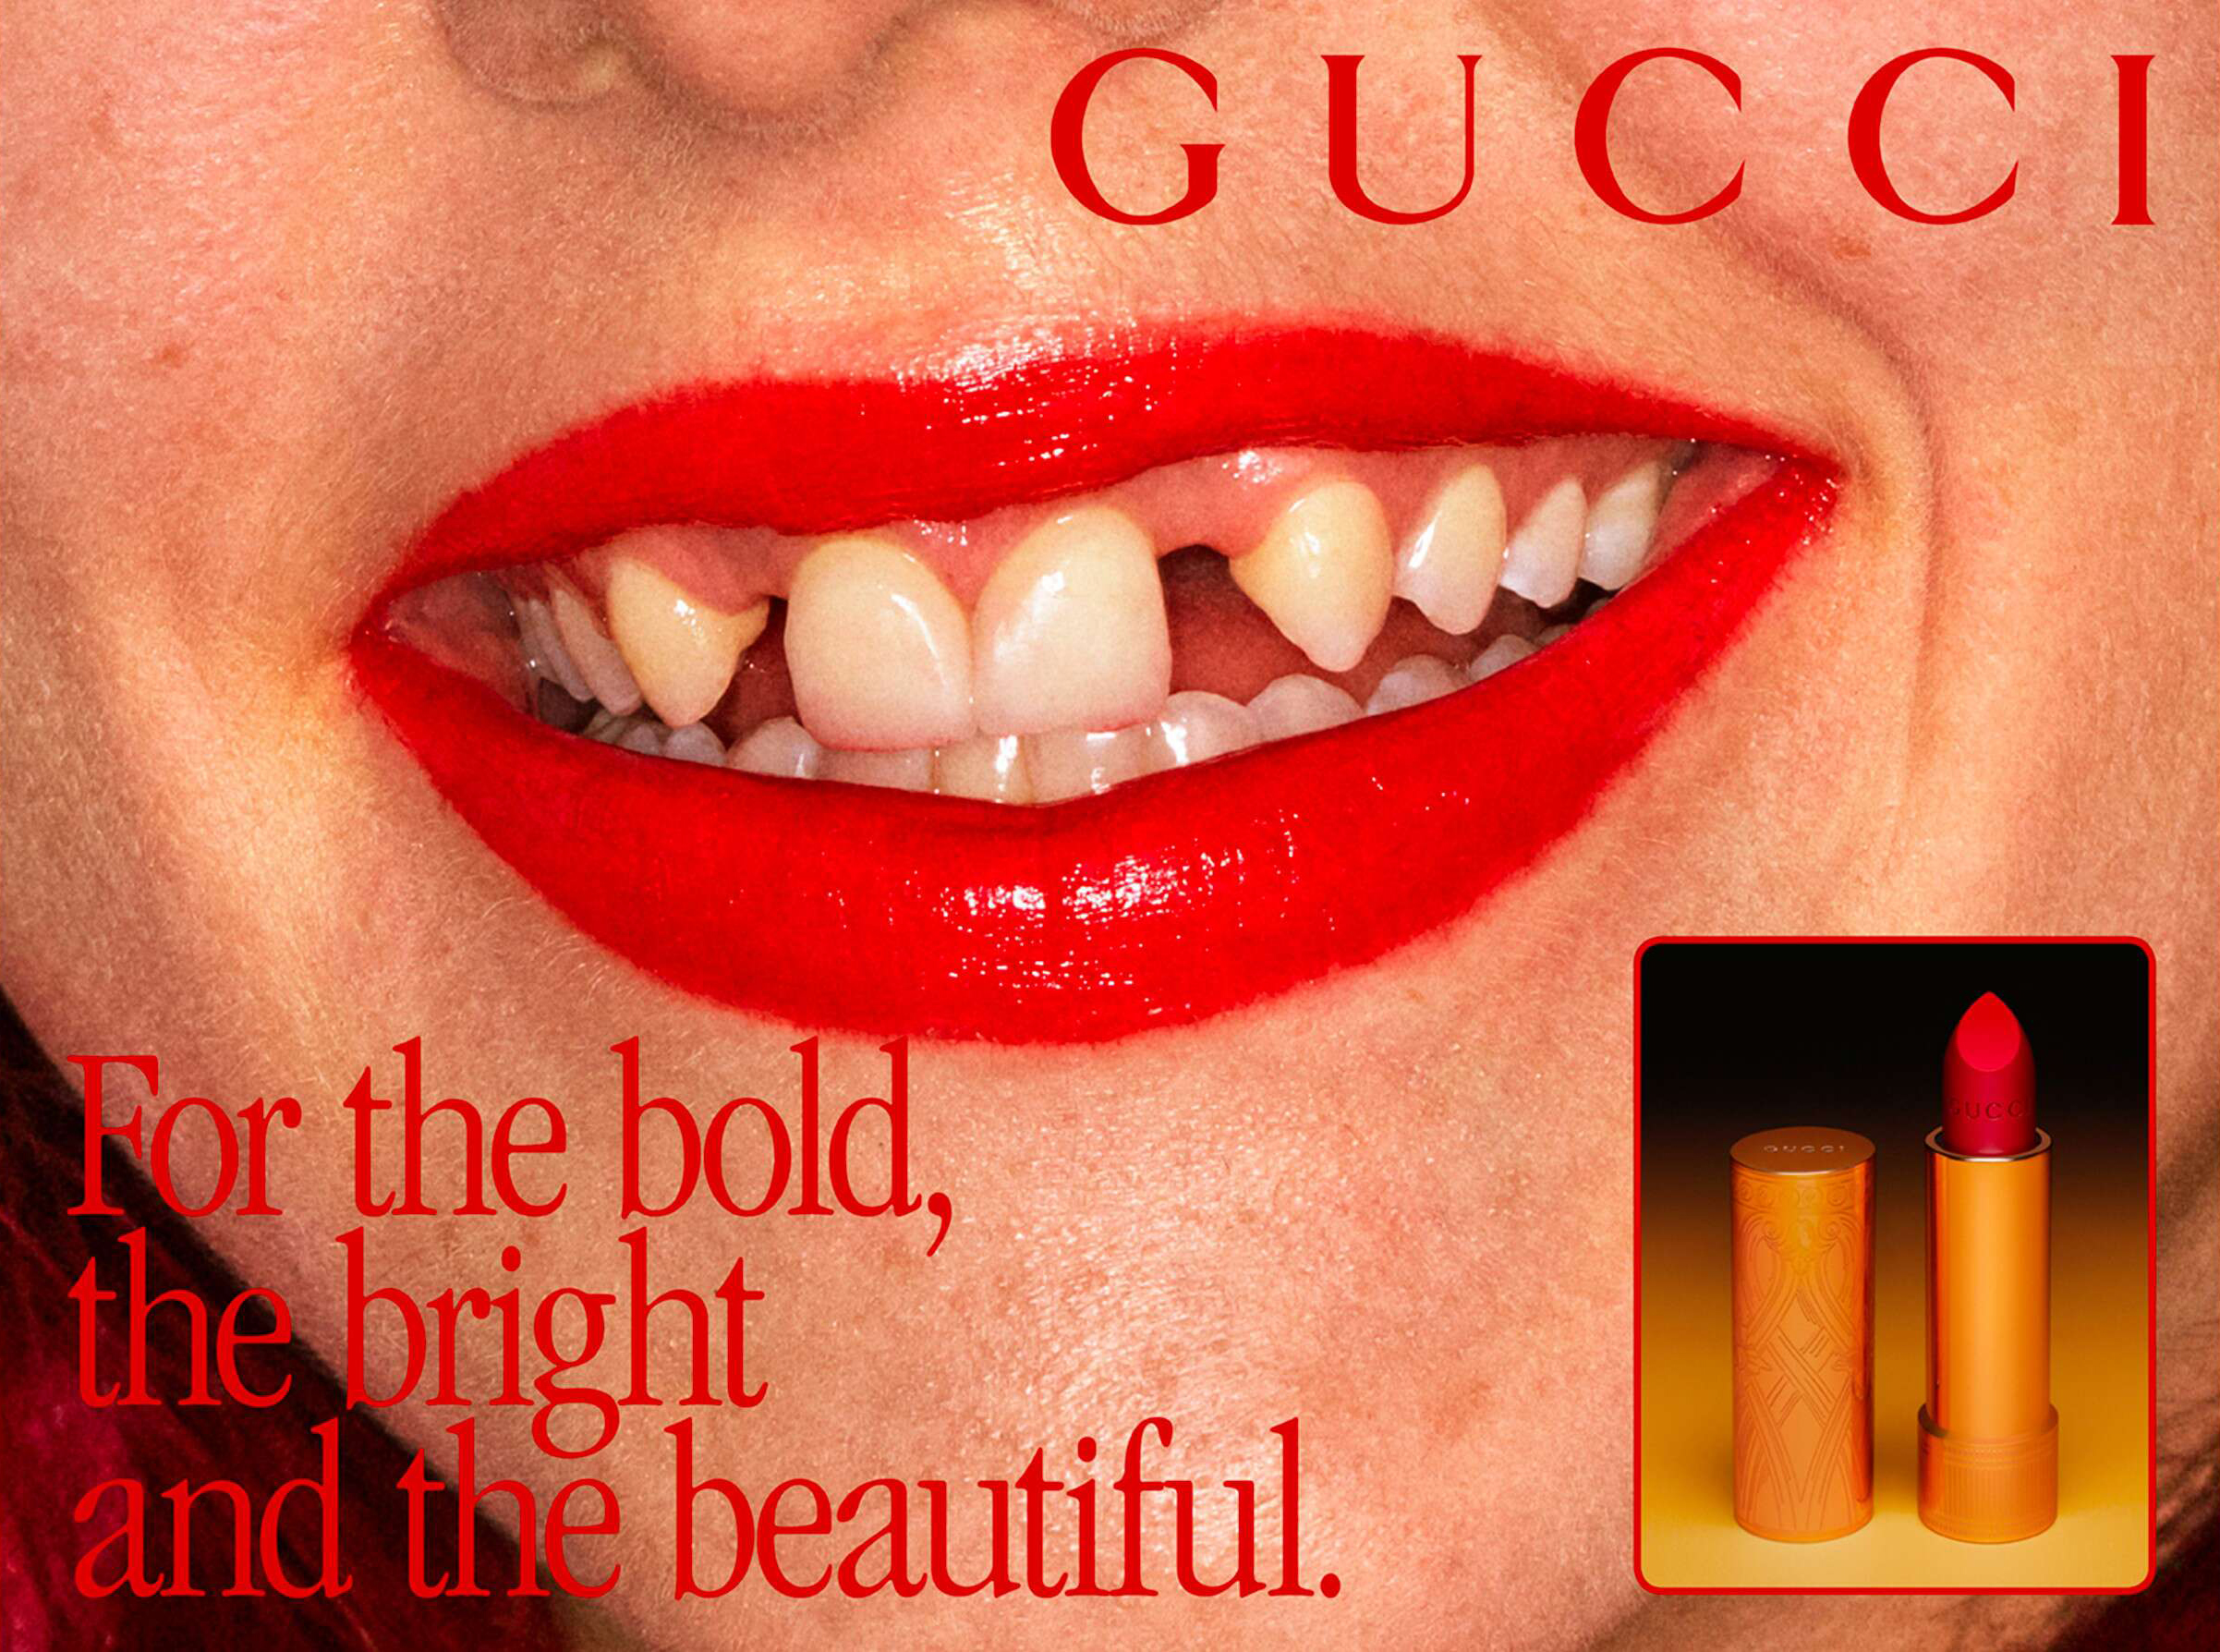 gucci_beauty_spring_2019_campaign2.jpg